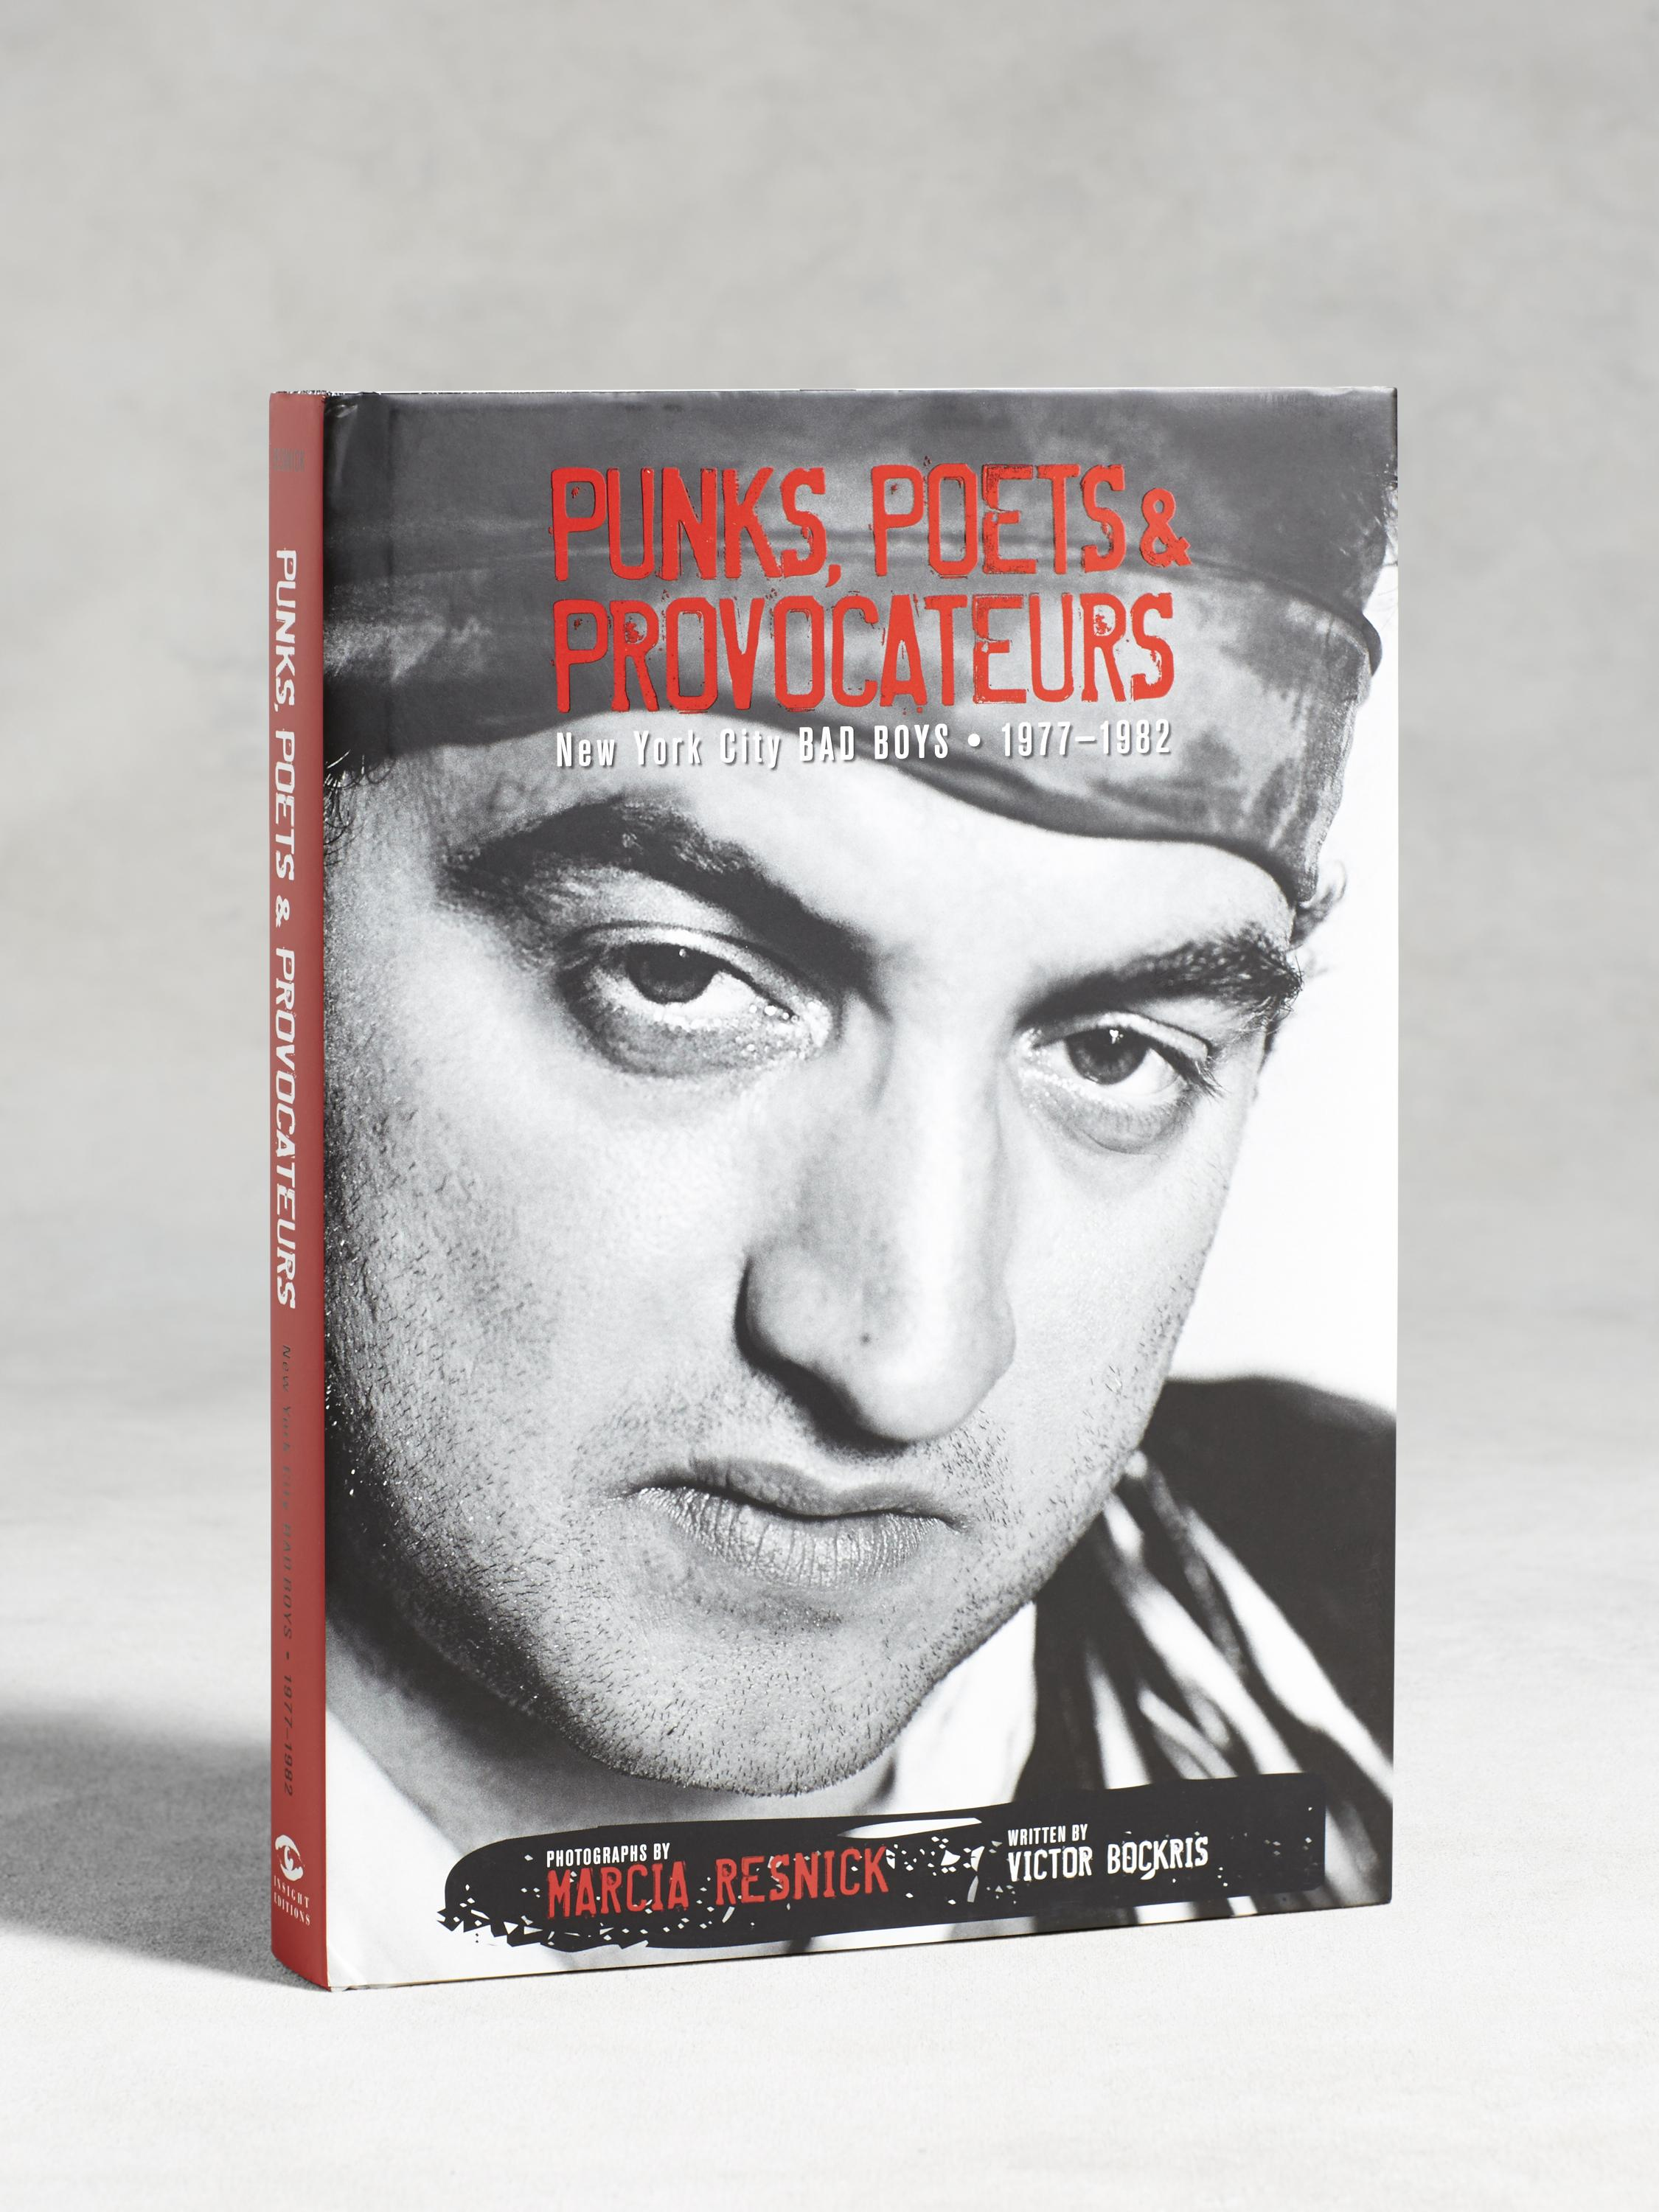 Punks, Poets & Provocateurs